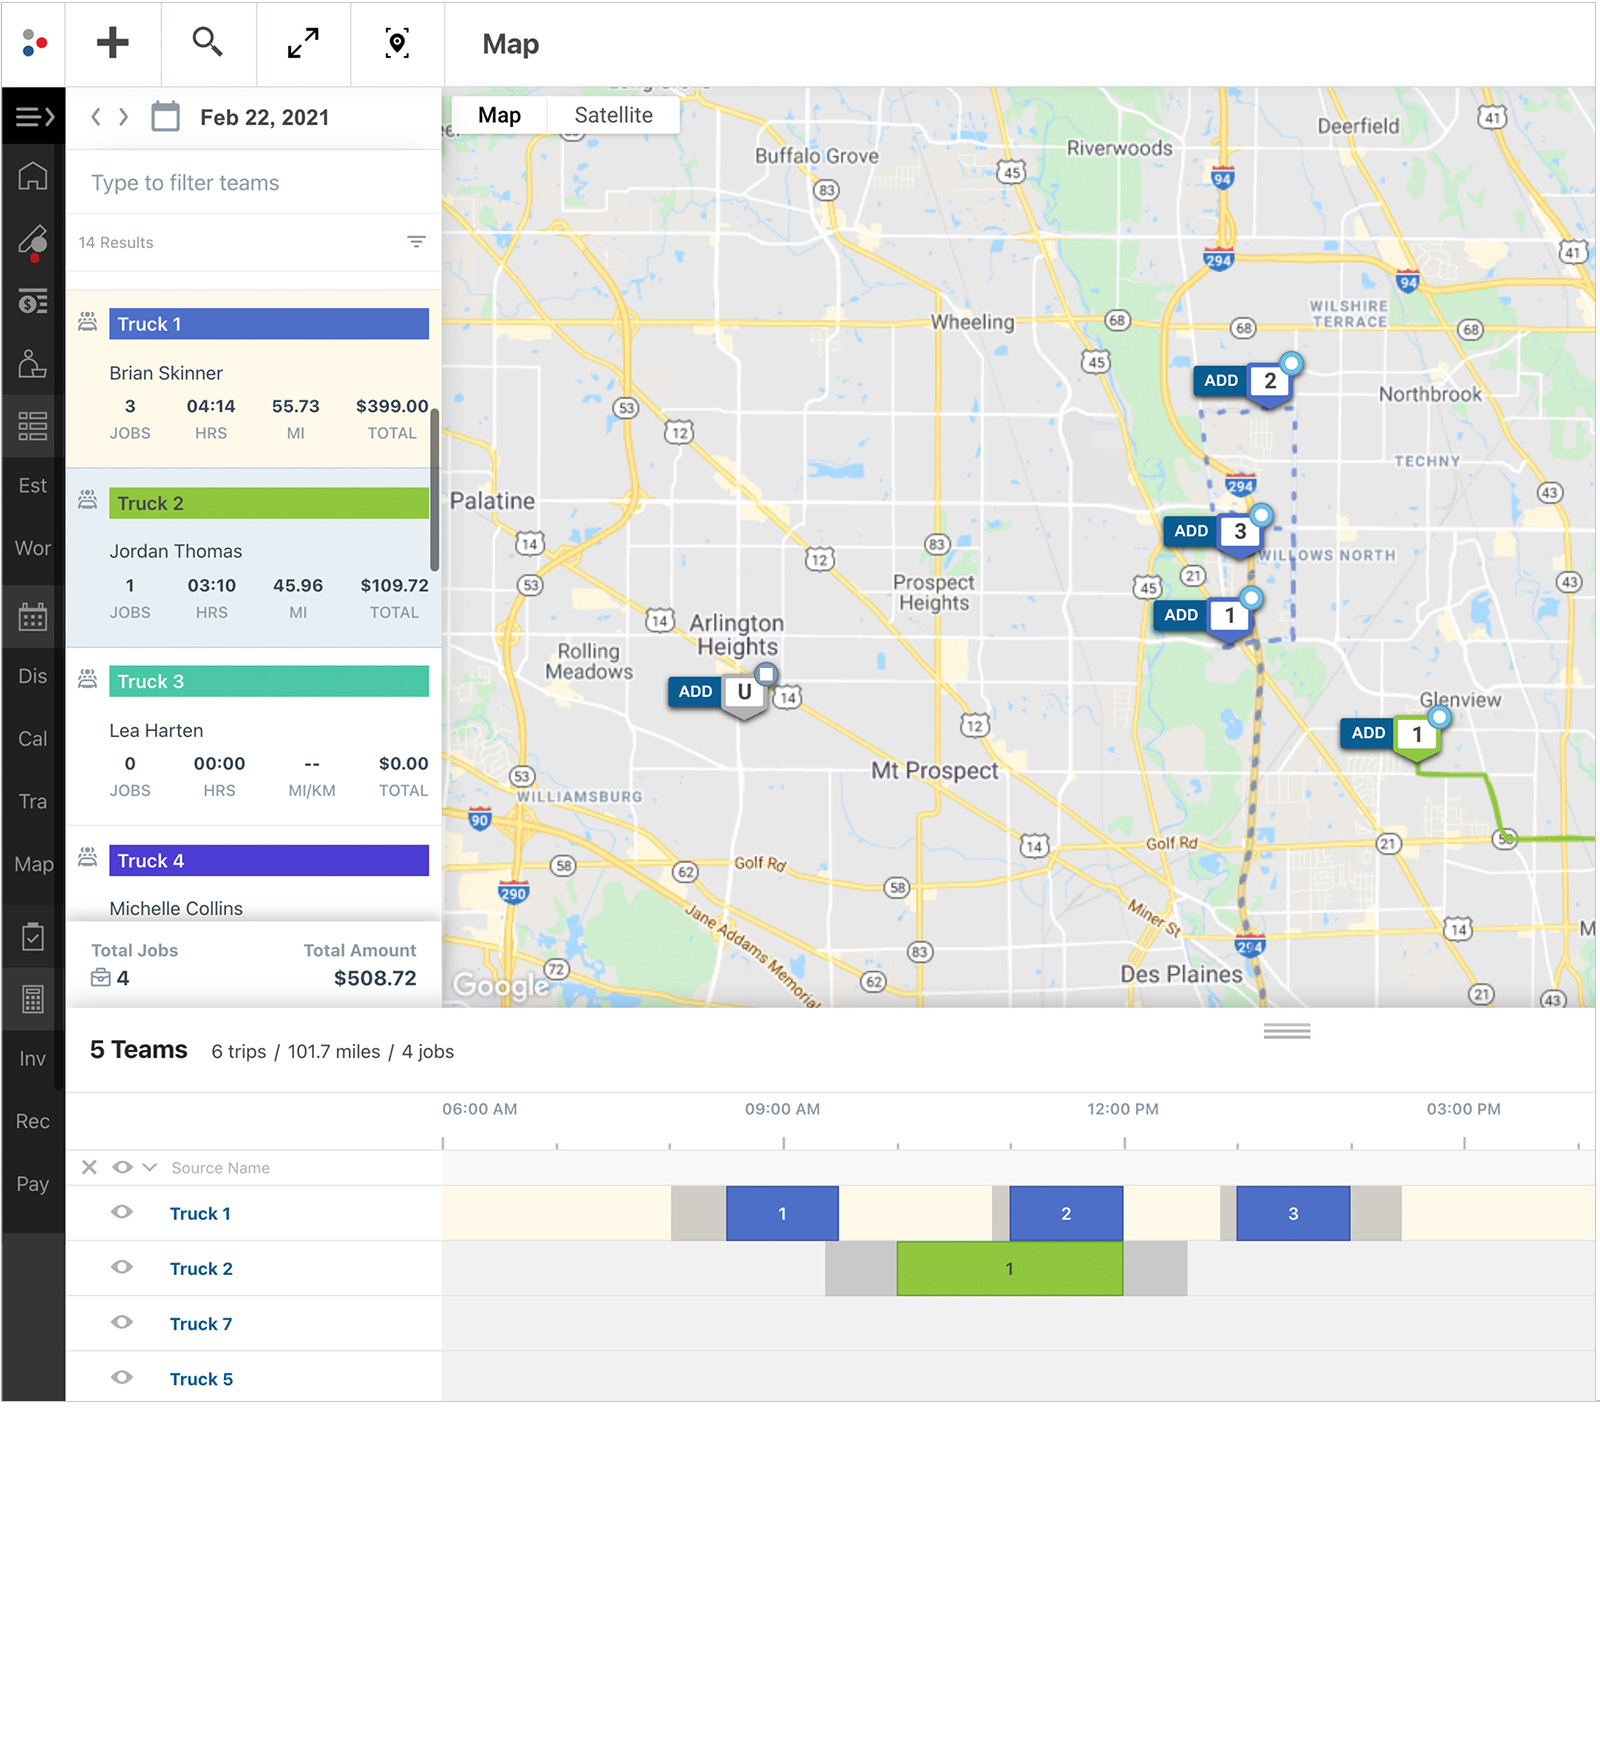 Map-based Scheduling